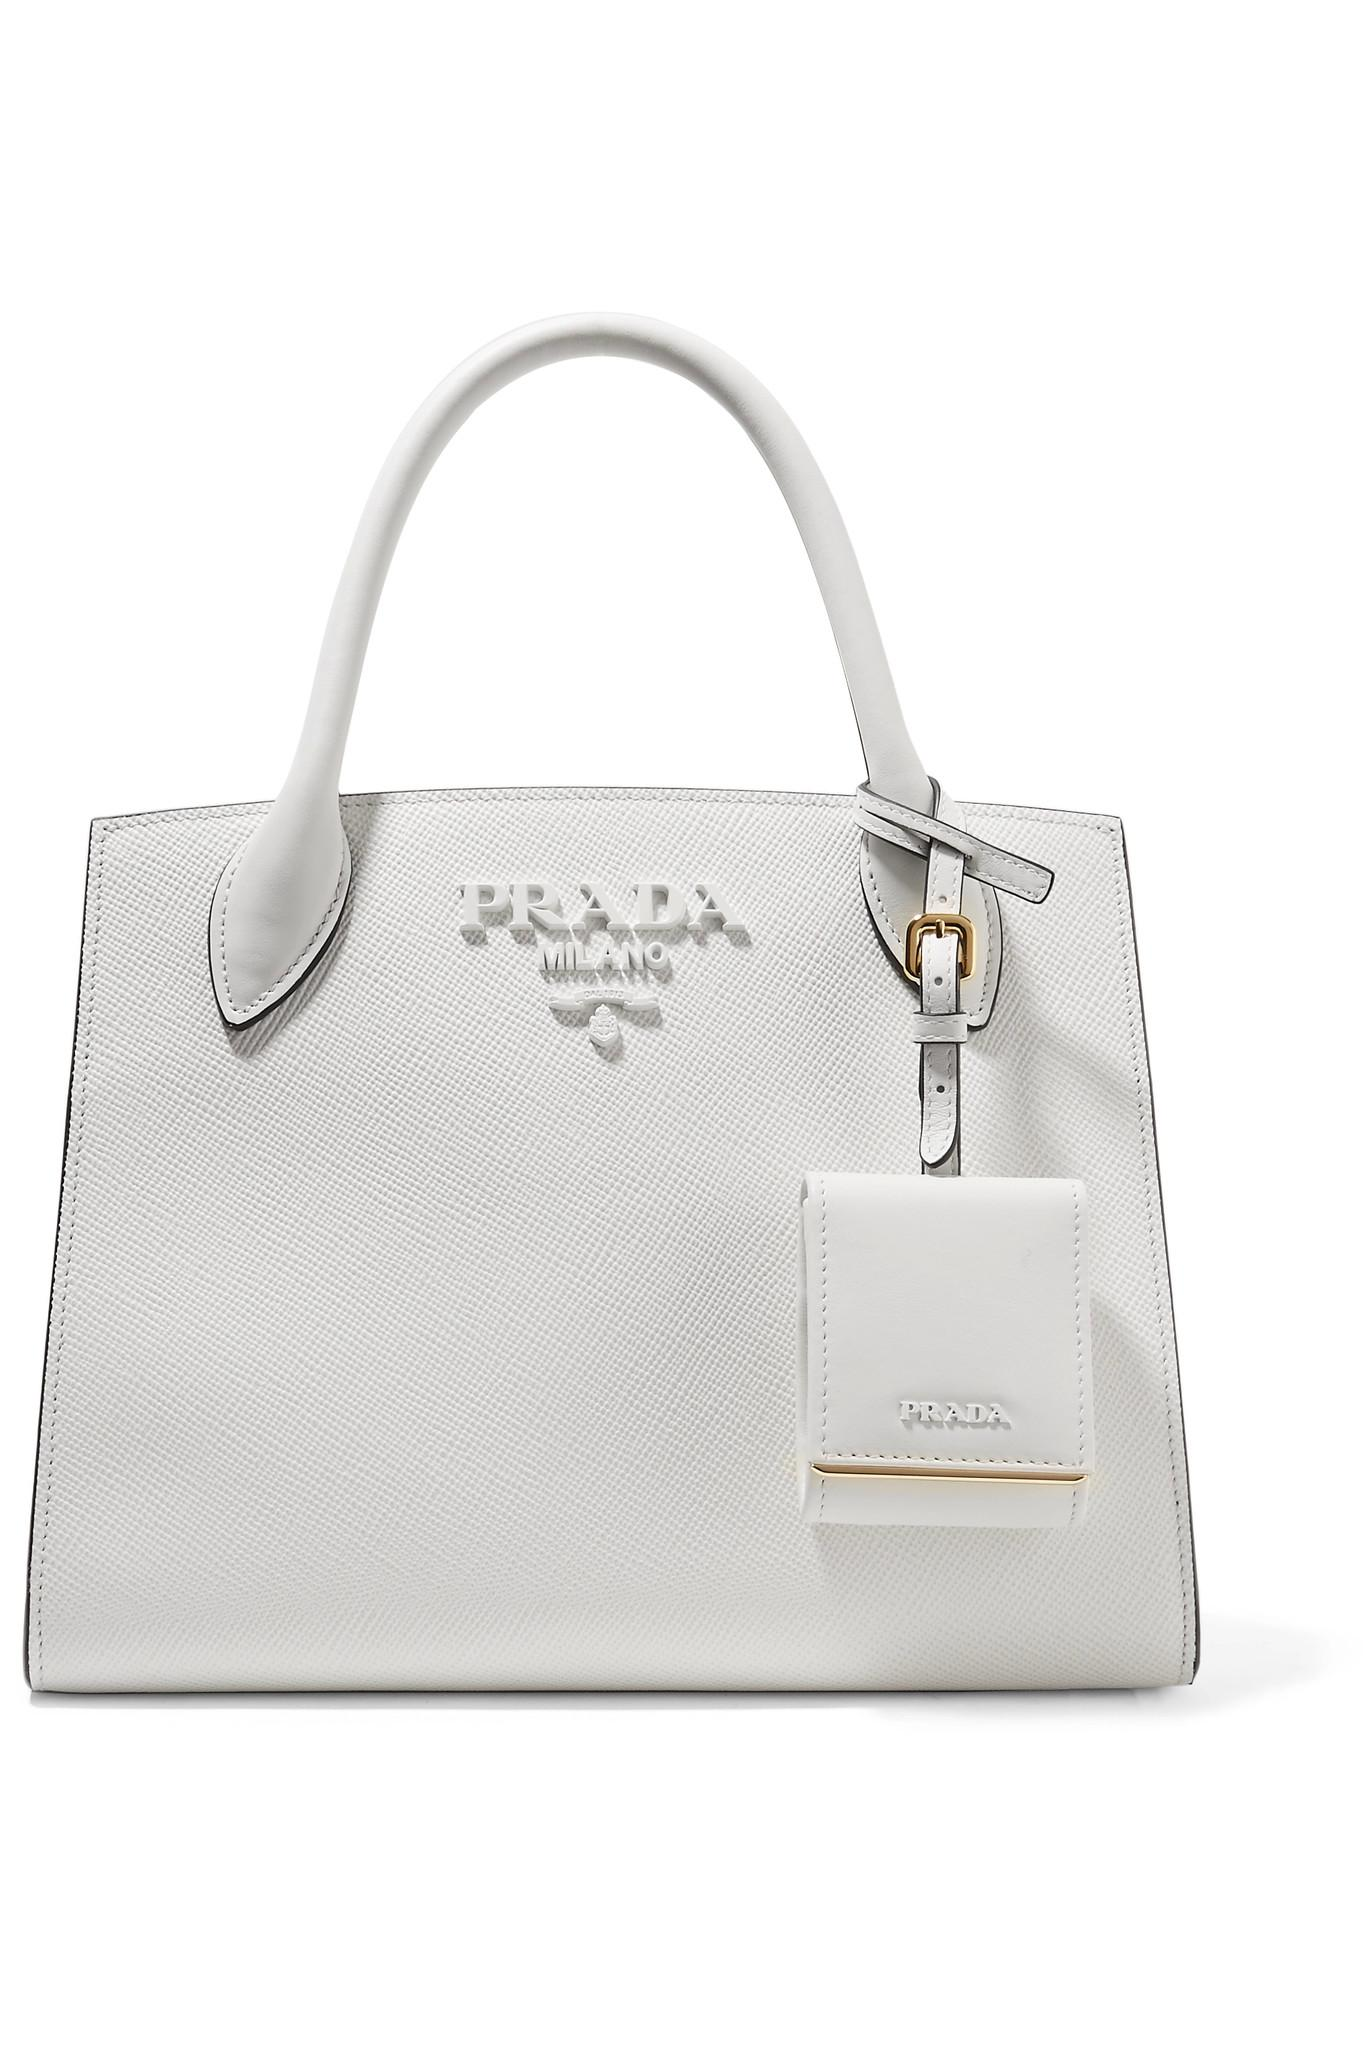 75578494a406 Lyst - Prada Textured-leather Tote in White